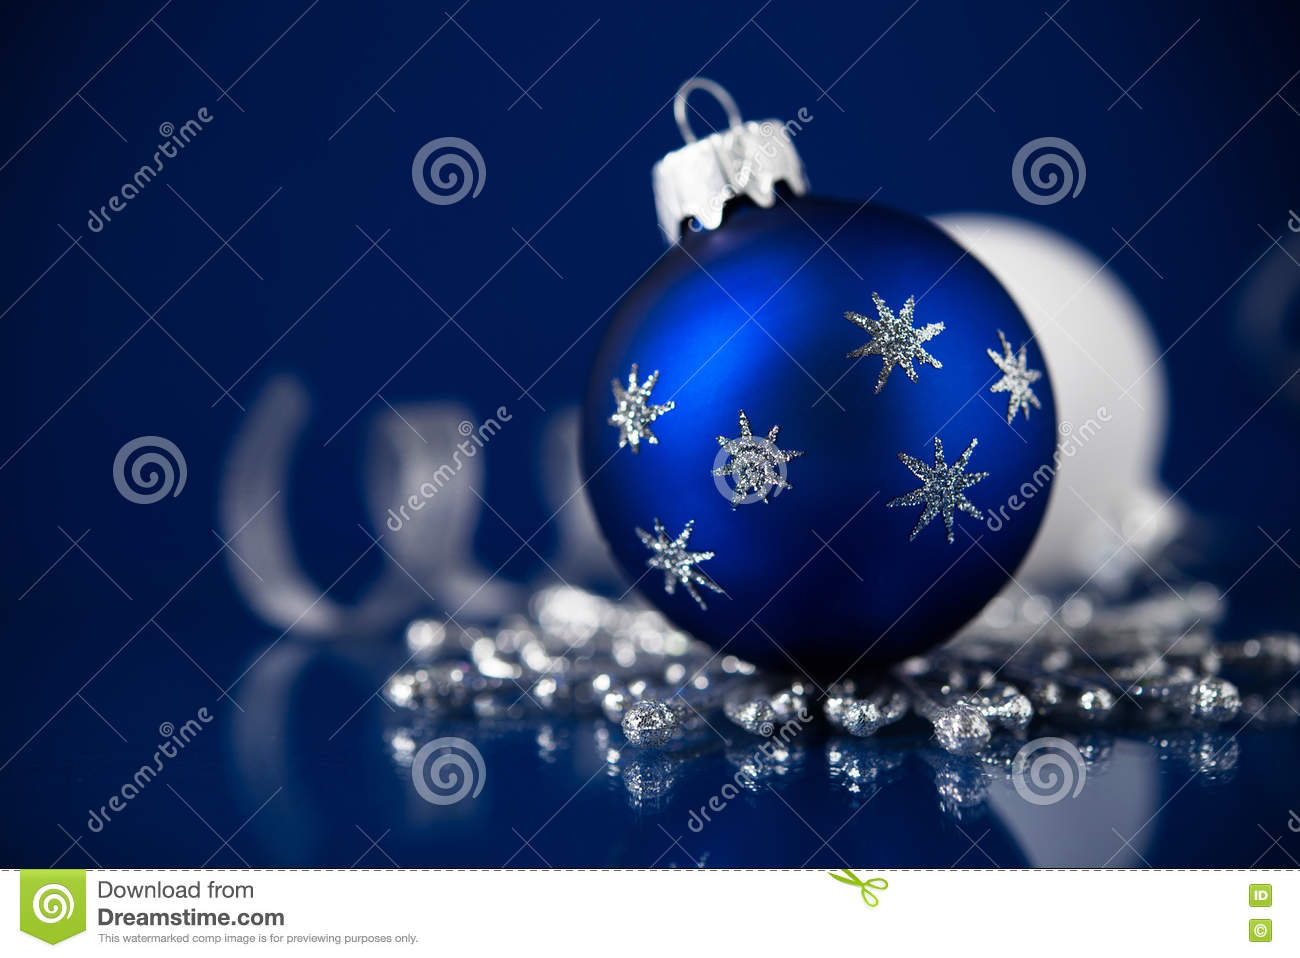 download silver white and blue christmas ornaments on dark blue background merry christmas card